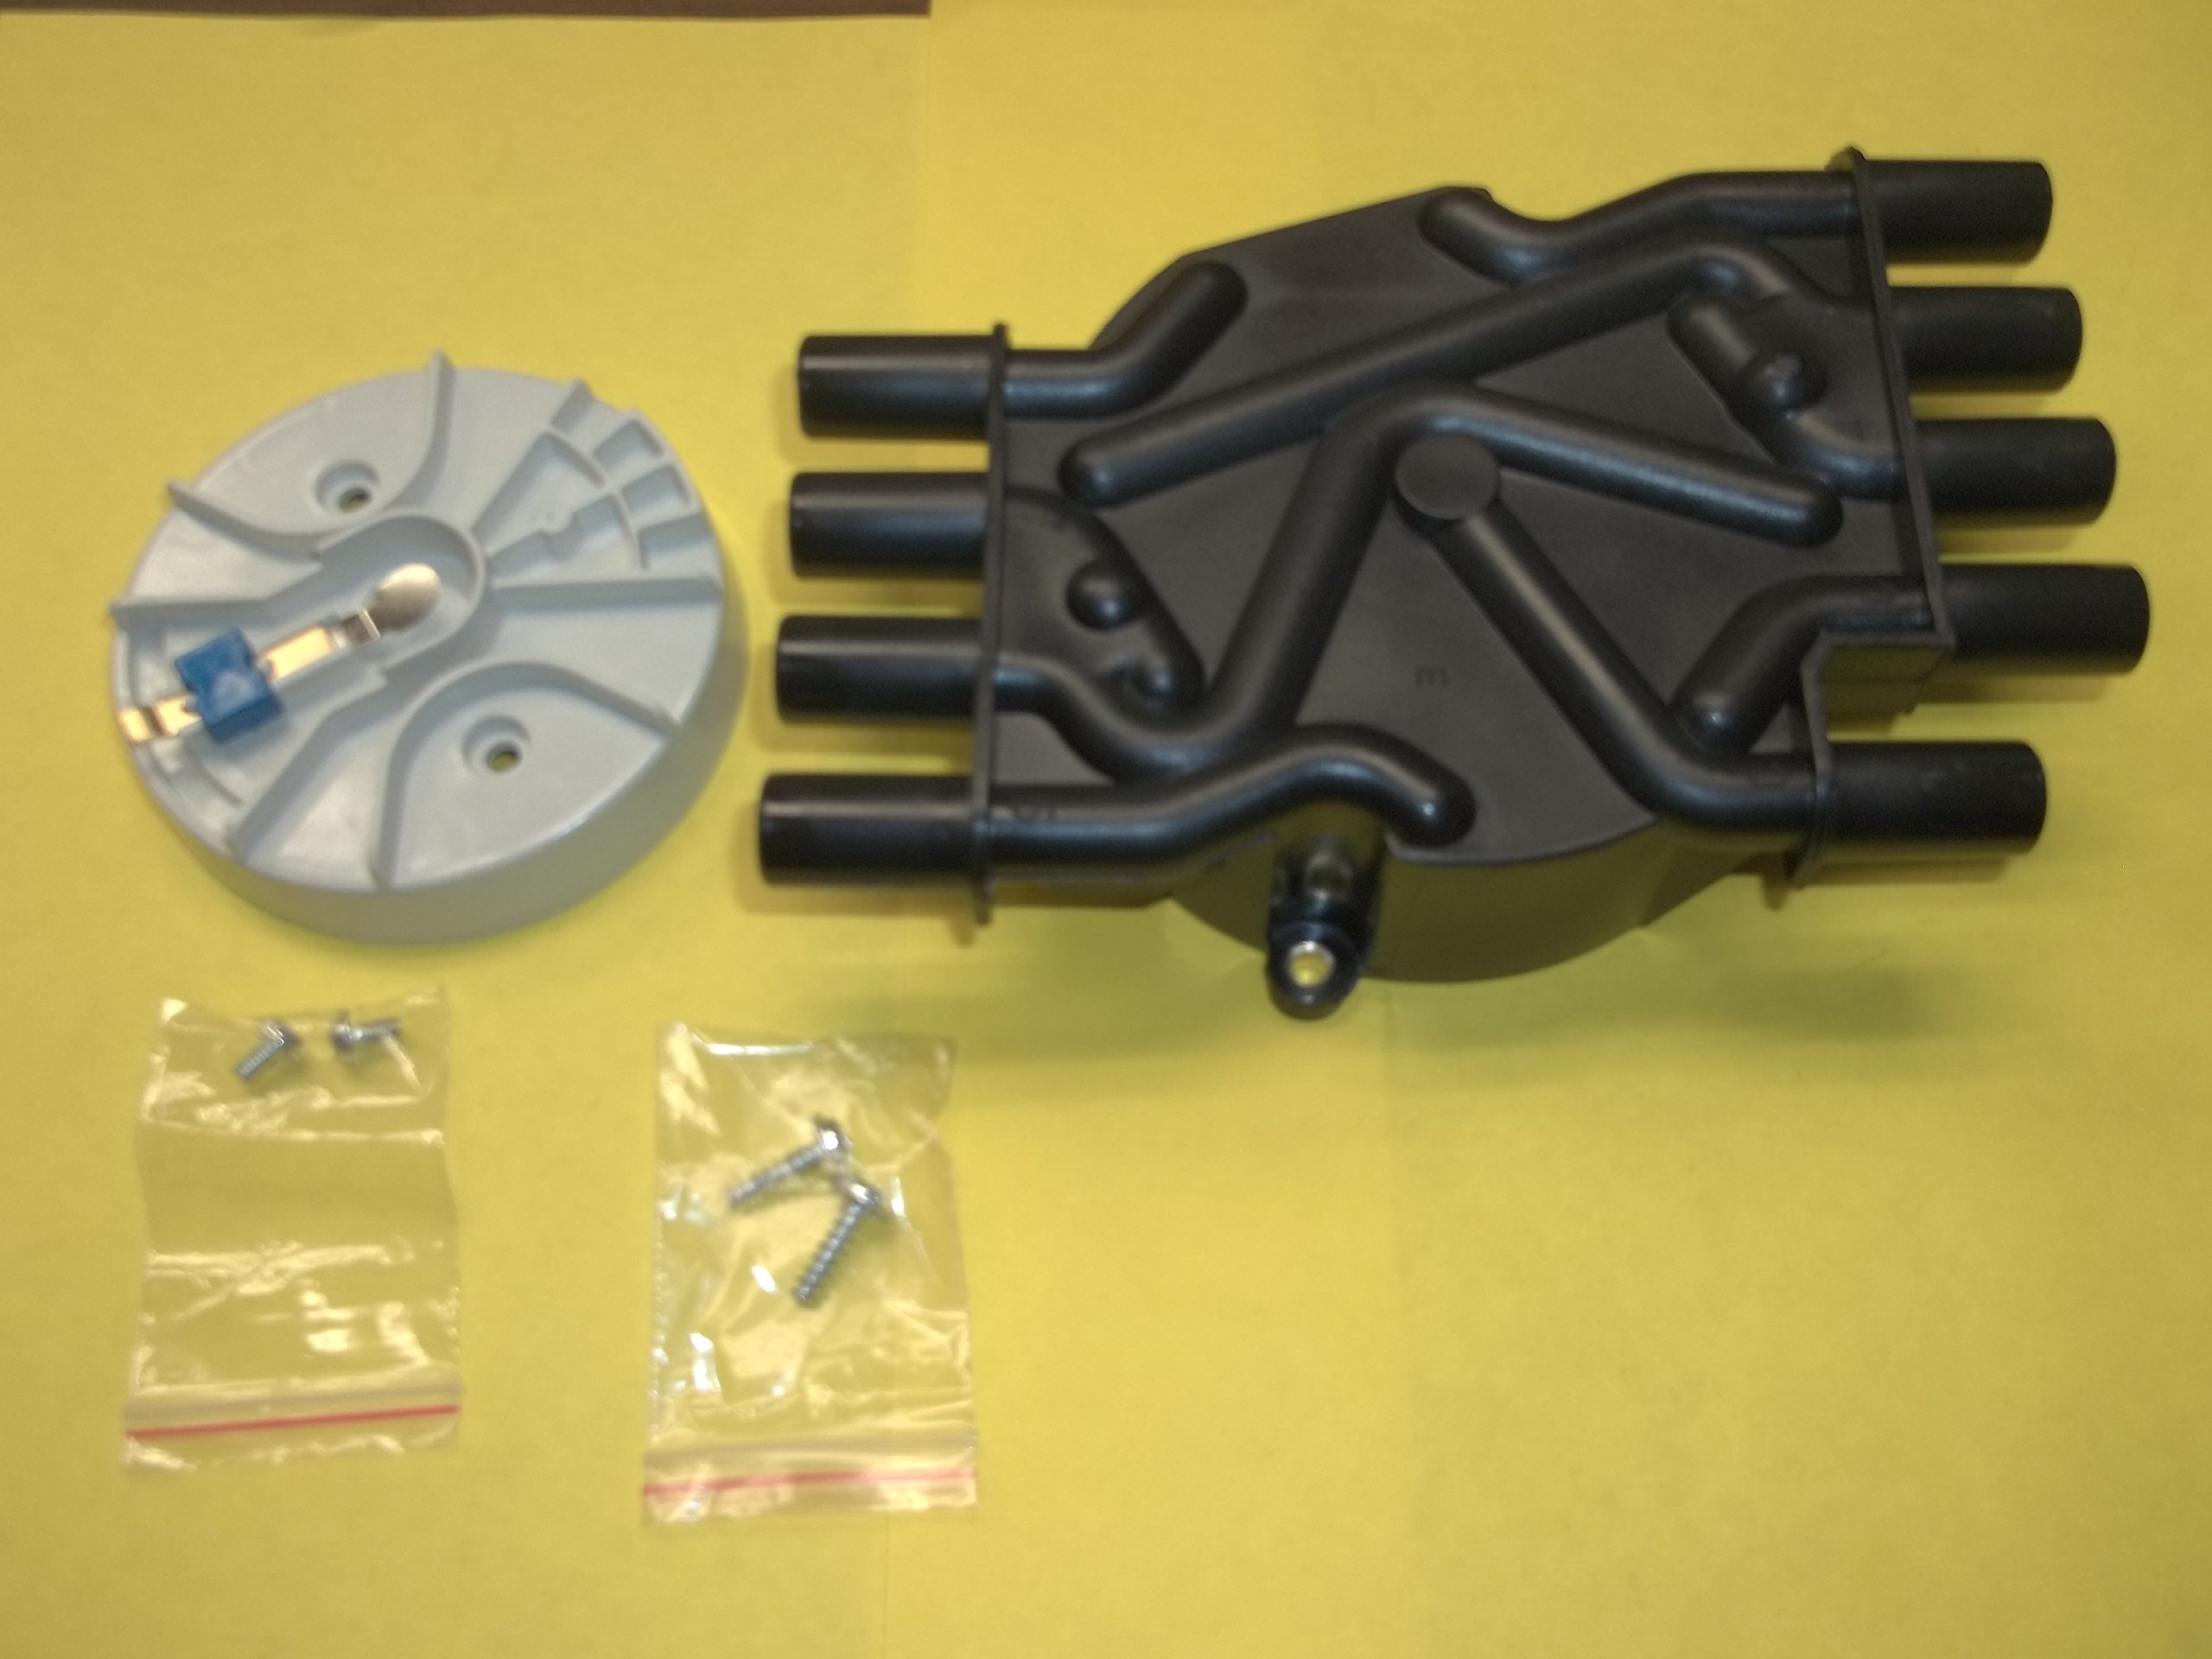 Mercruiser and Volvo Penta V8 Distributor Cap and Rotor kit for 5.0, 5.7, 6.2 engines